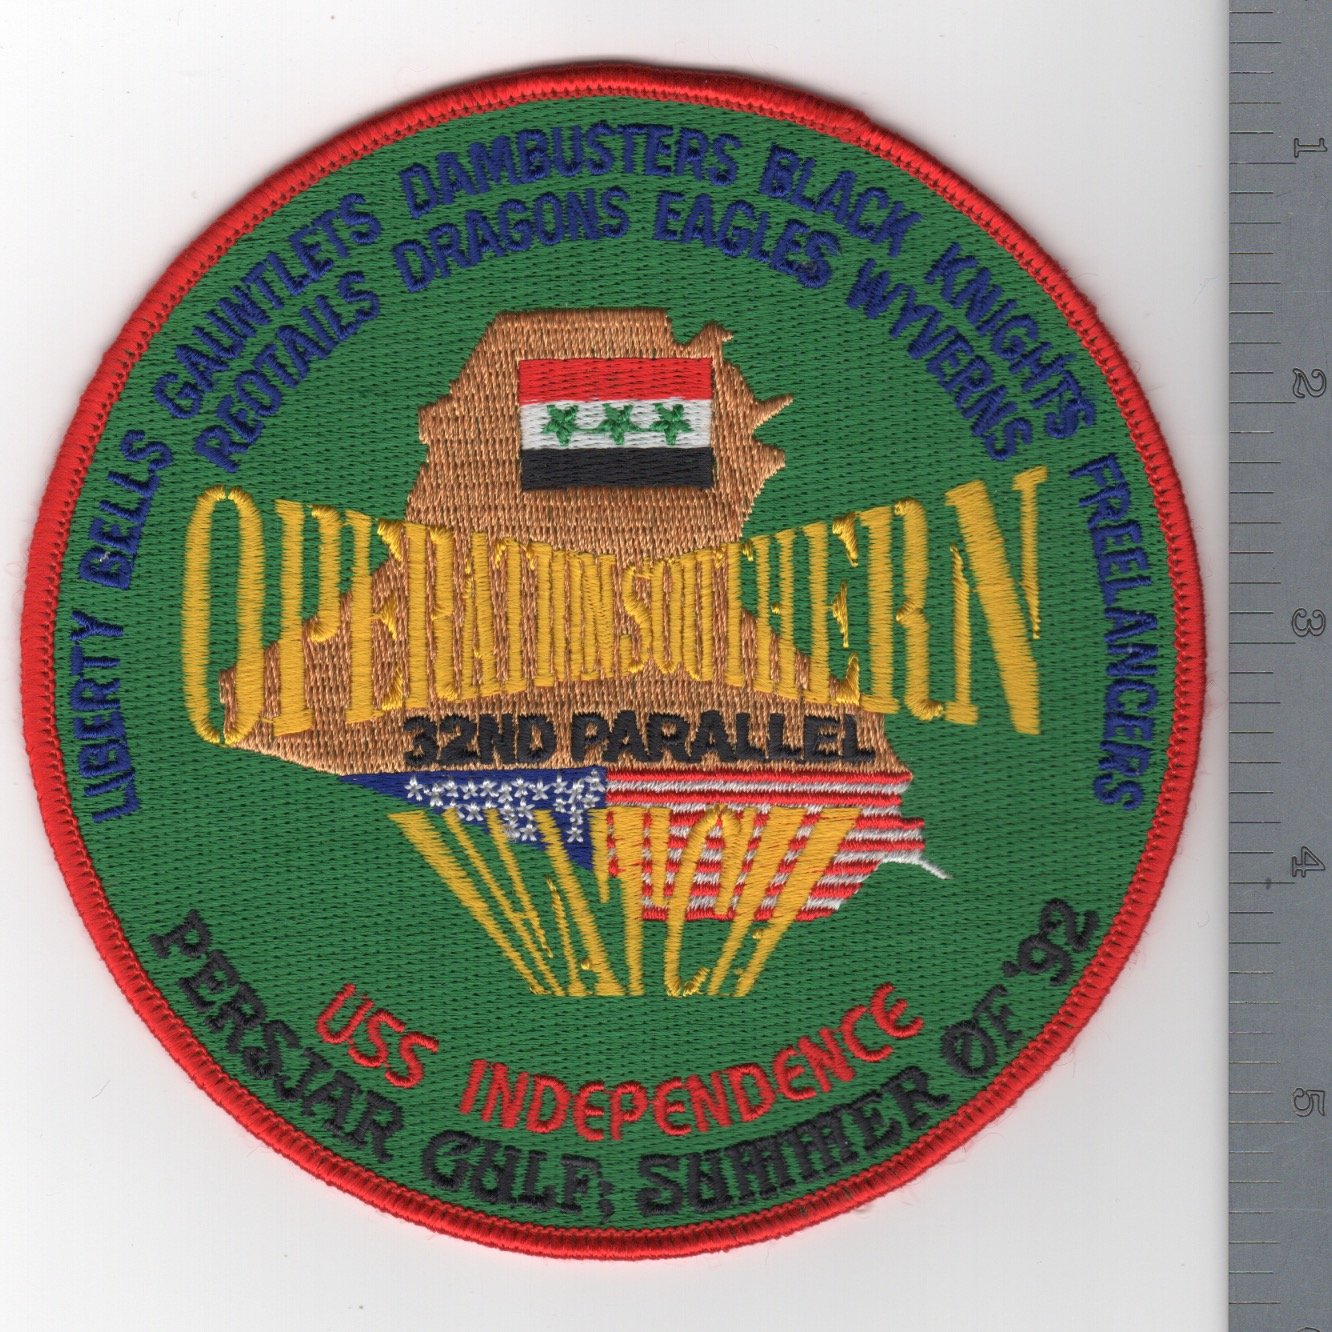 405) CV-62 1992 OSW Cruise Patch